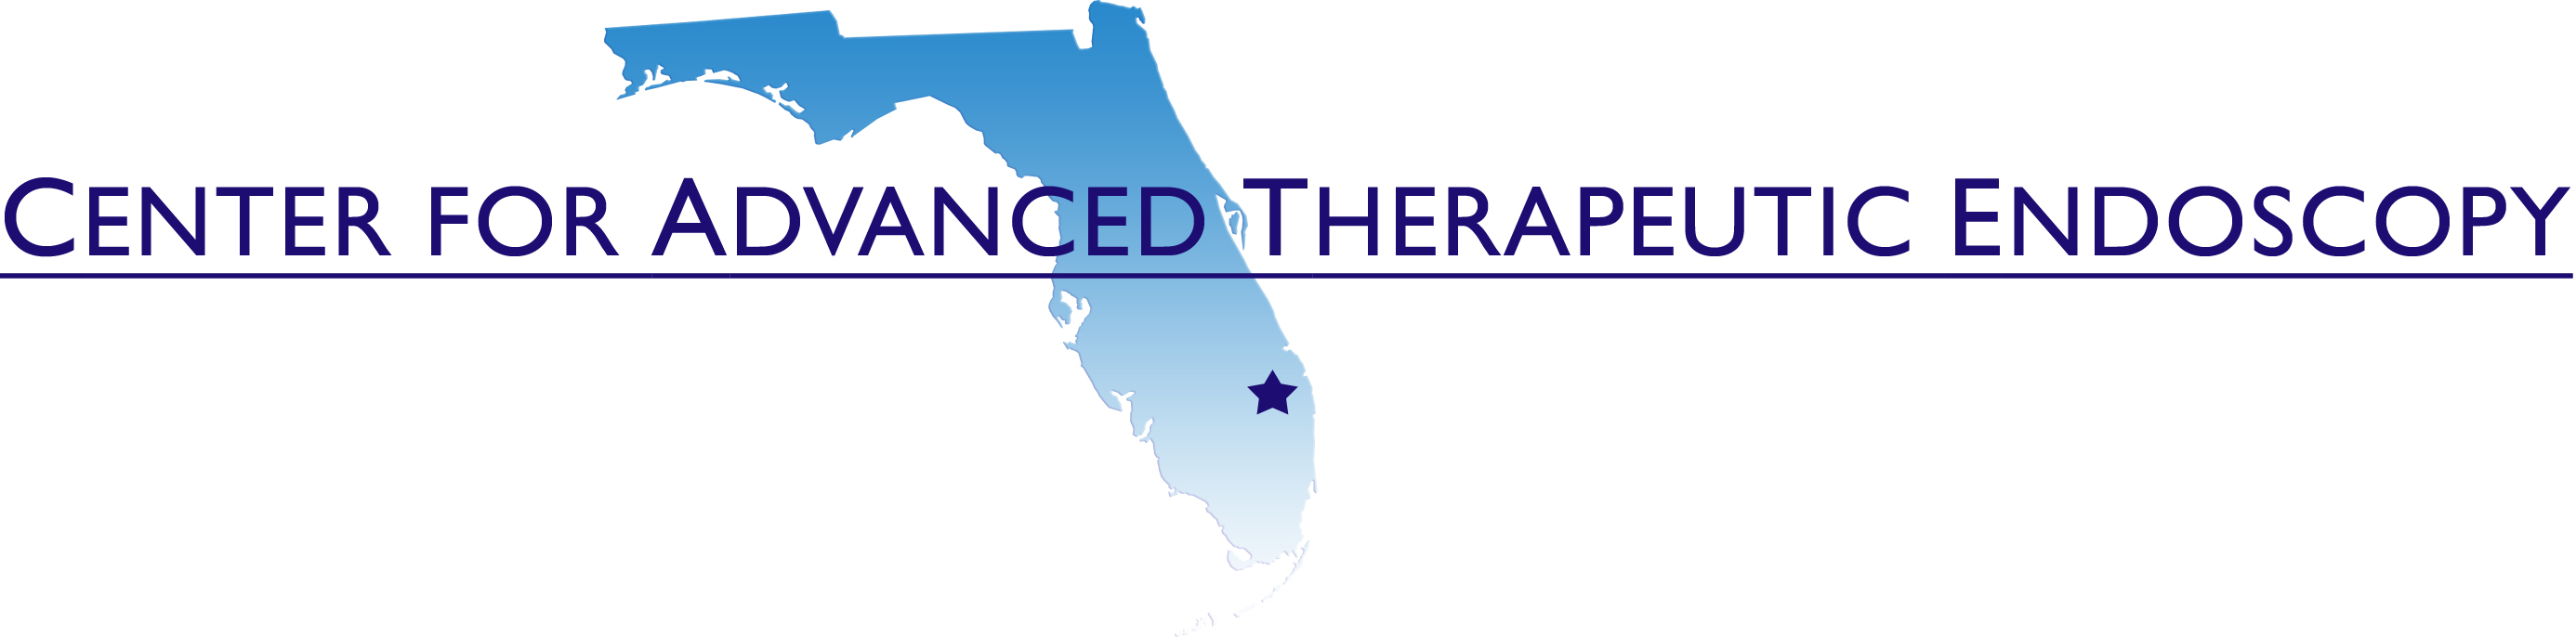 The Pancreas & Biliary Center of South Florida